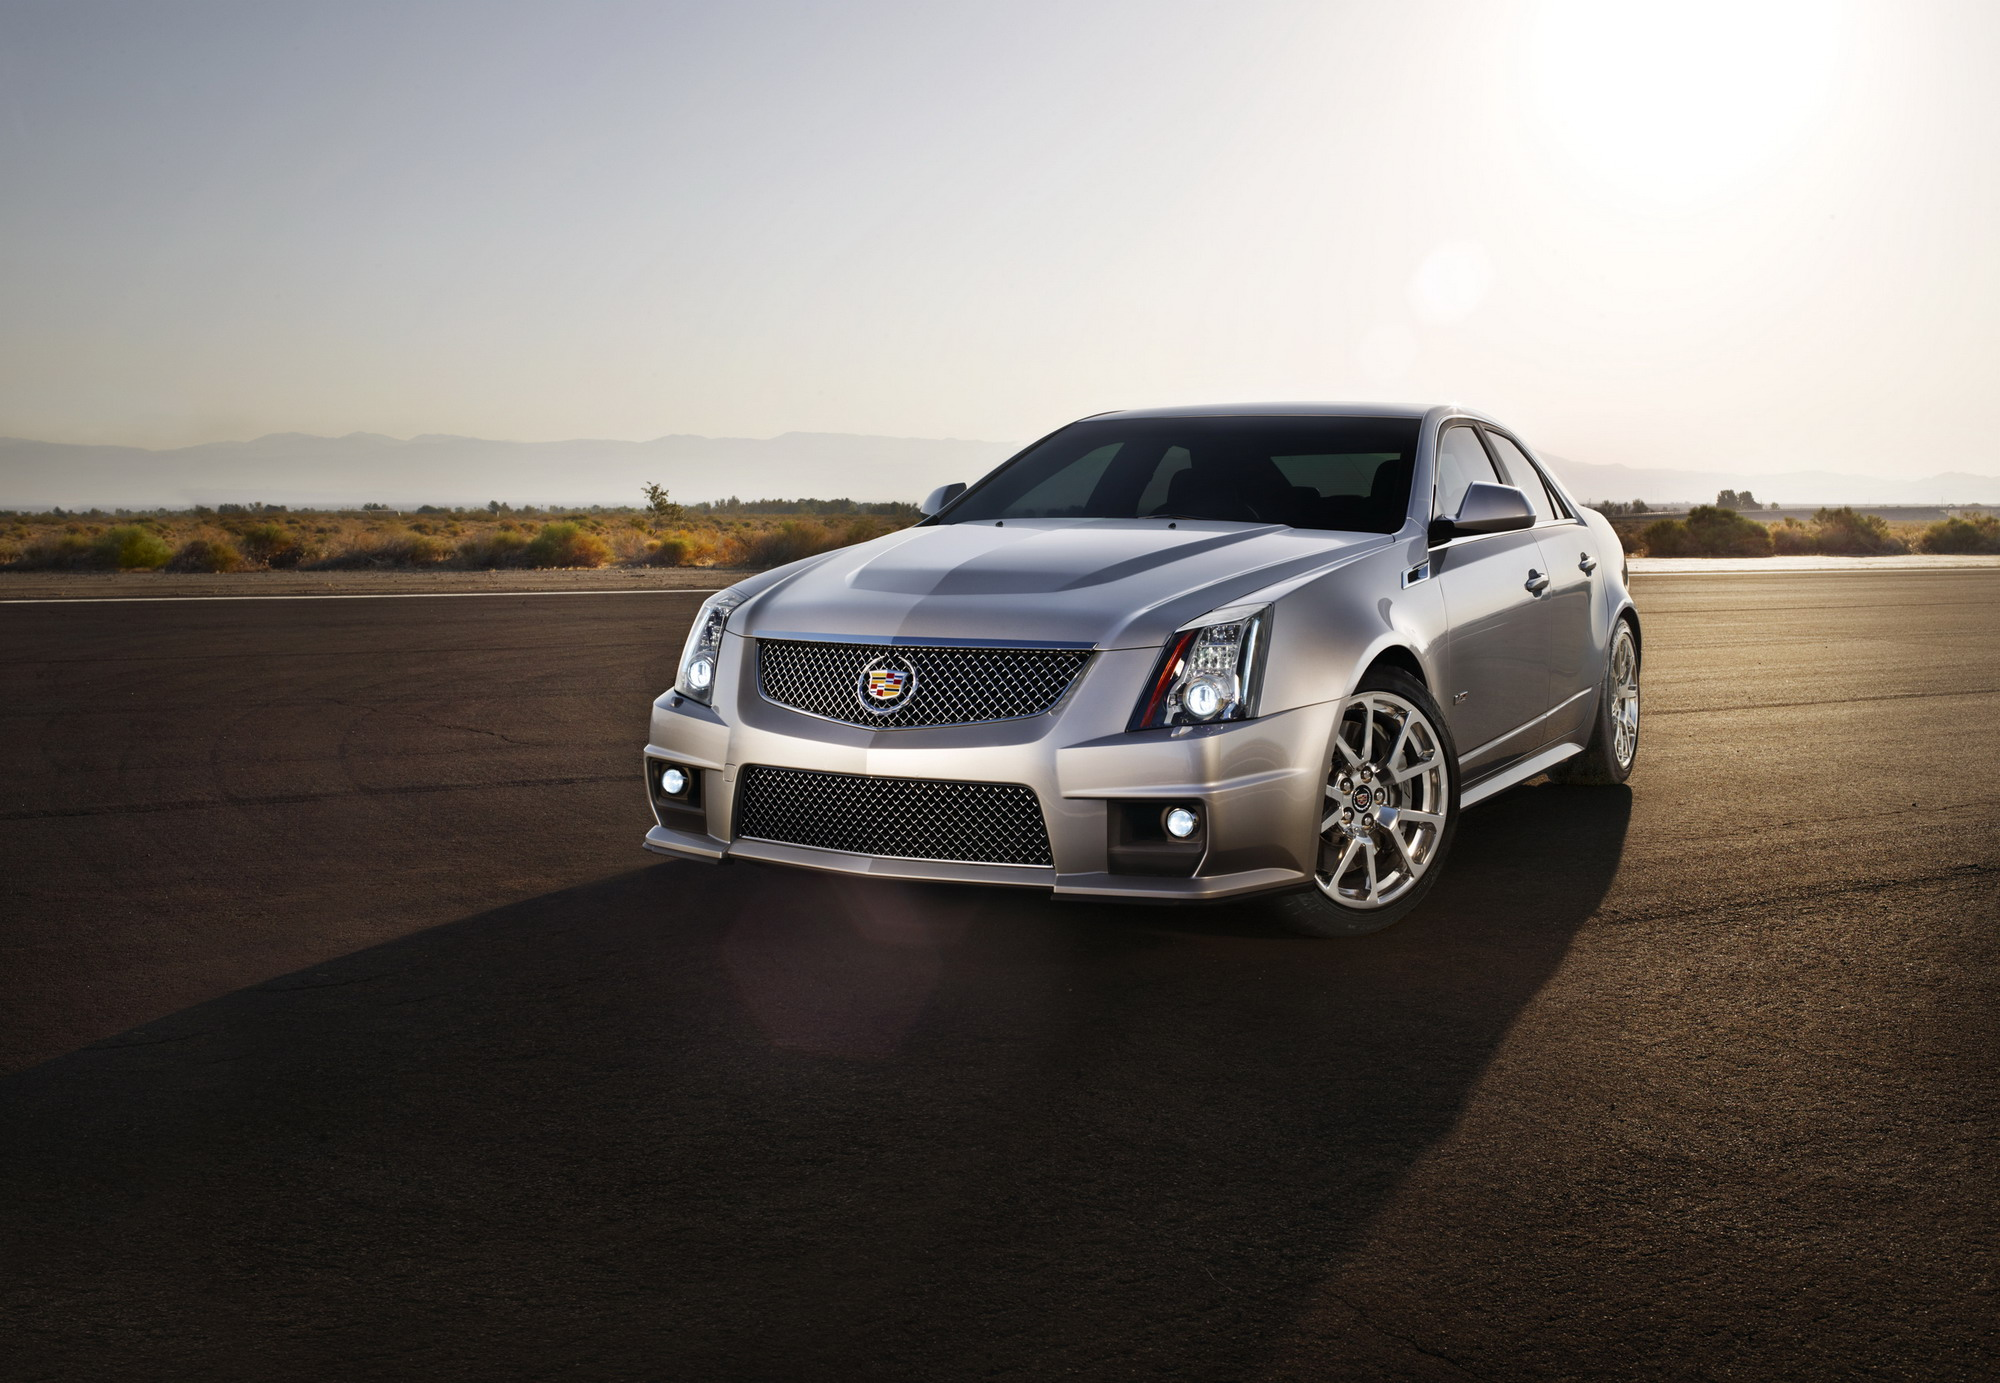 2013 Cadillac CTS-V | Top Speed